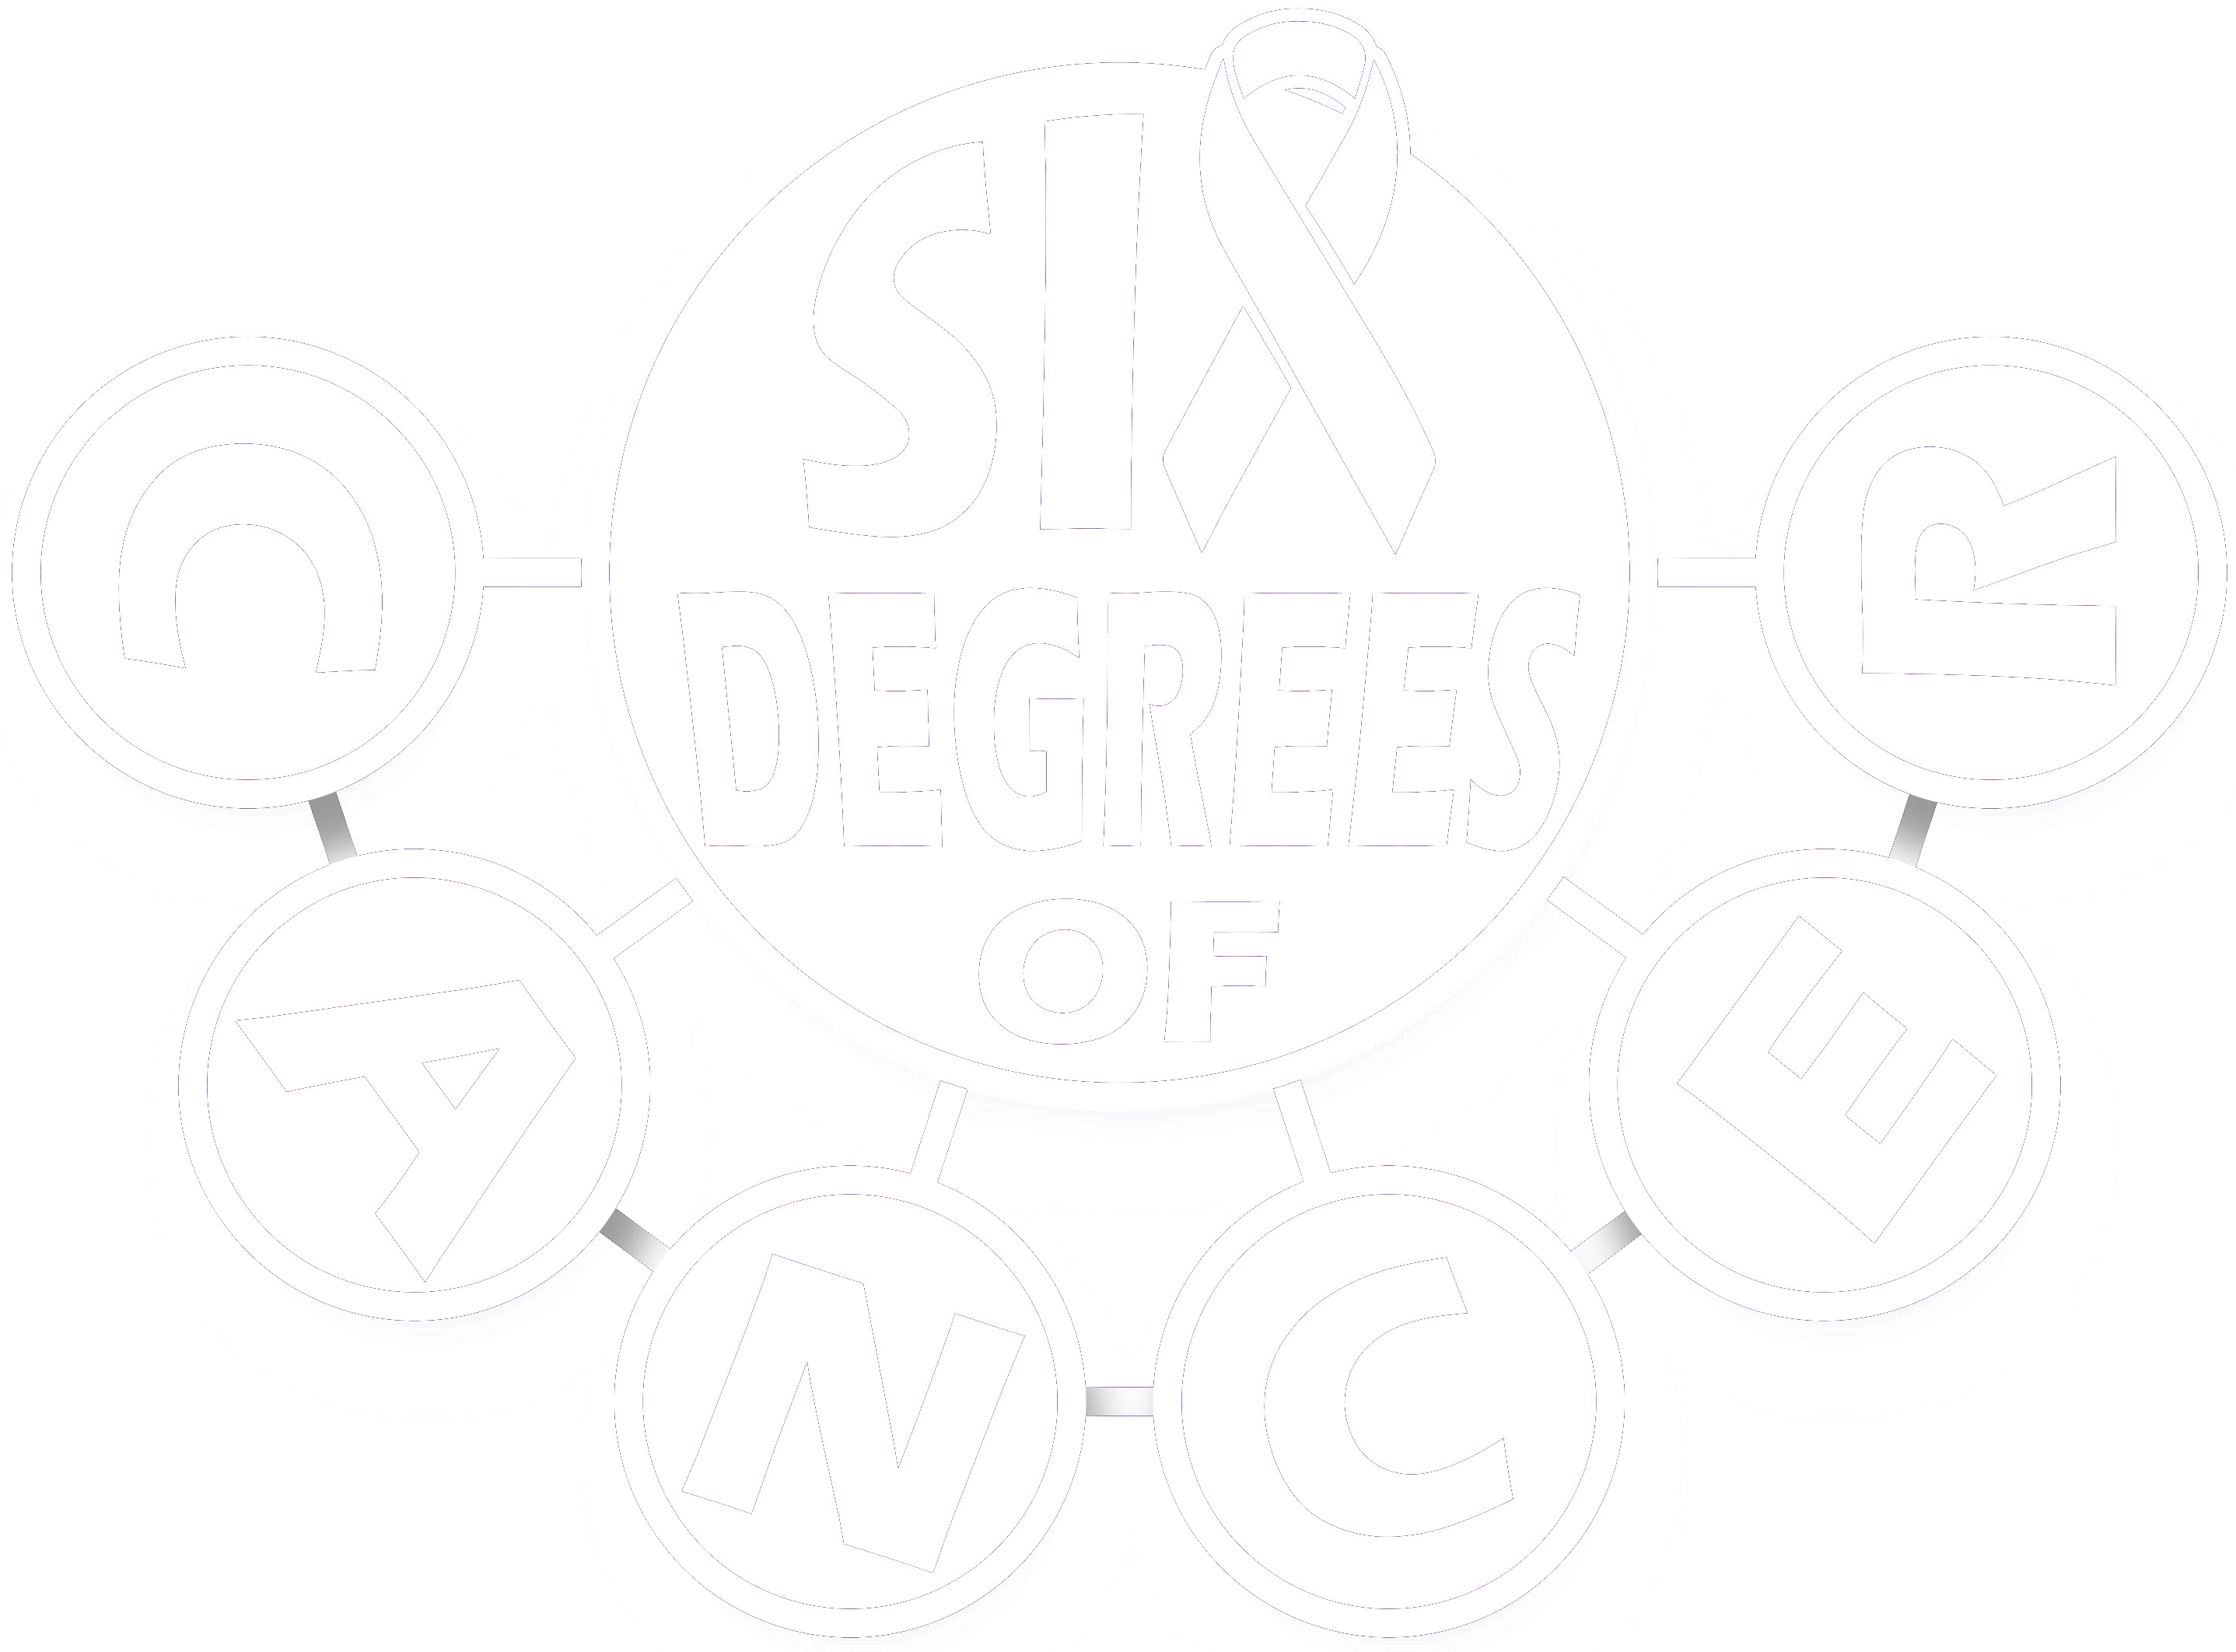 Six Degrees of Cancer